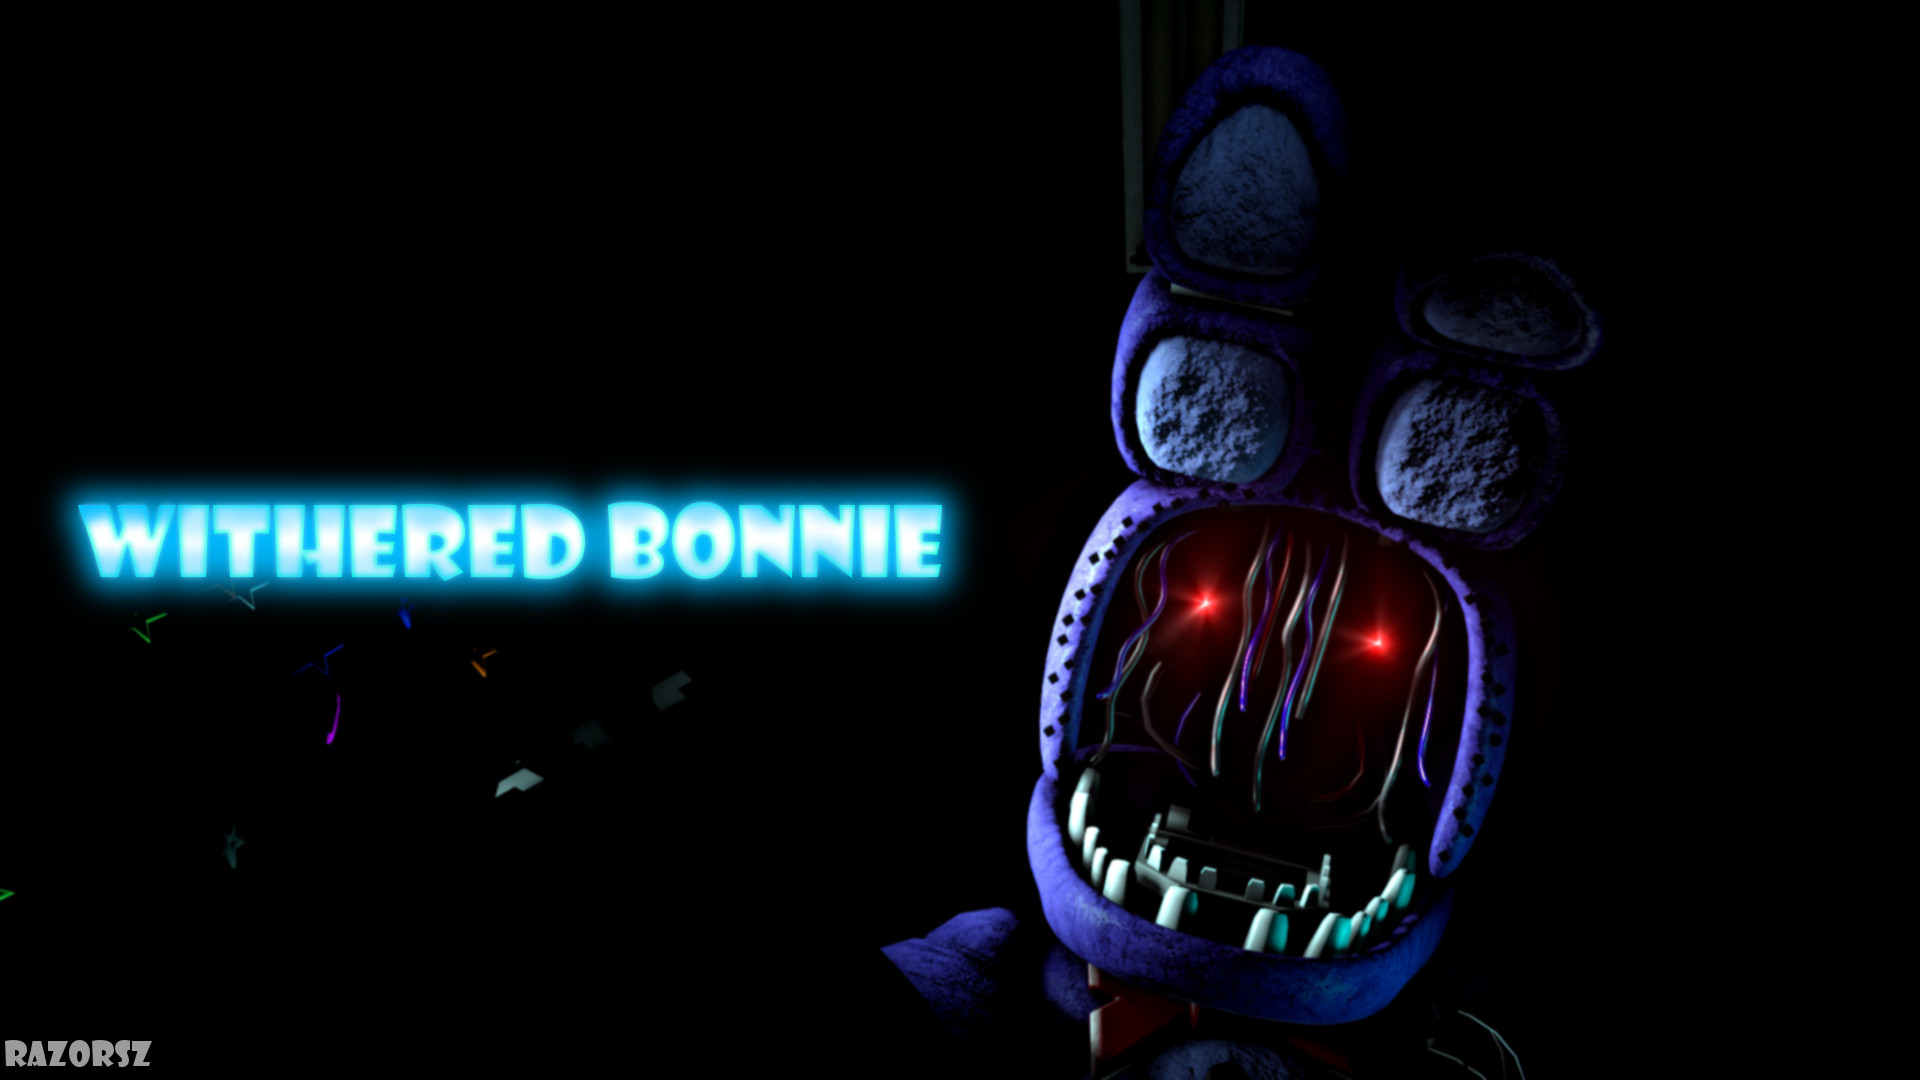 … Withered Bonnie (Wallpaper) by Razorsz